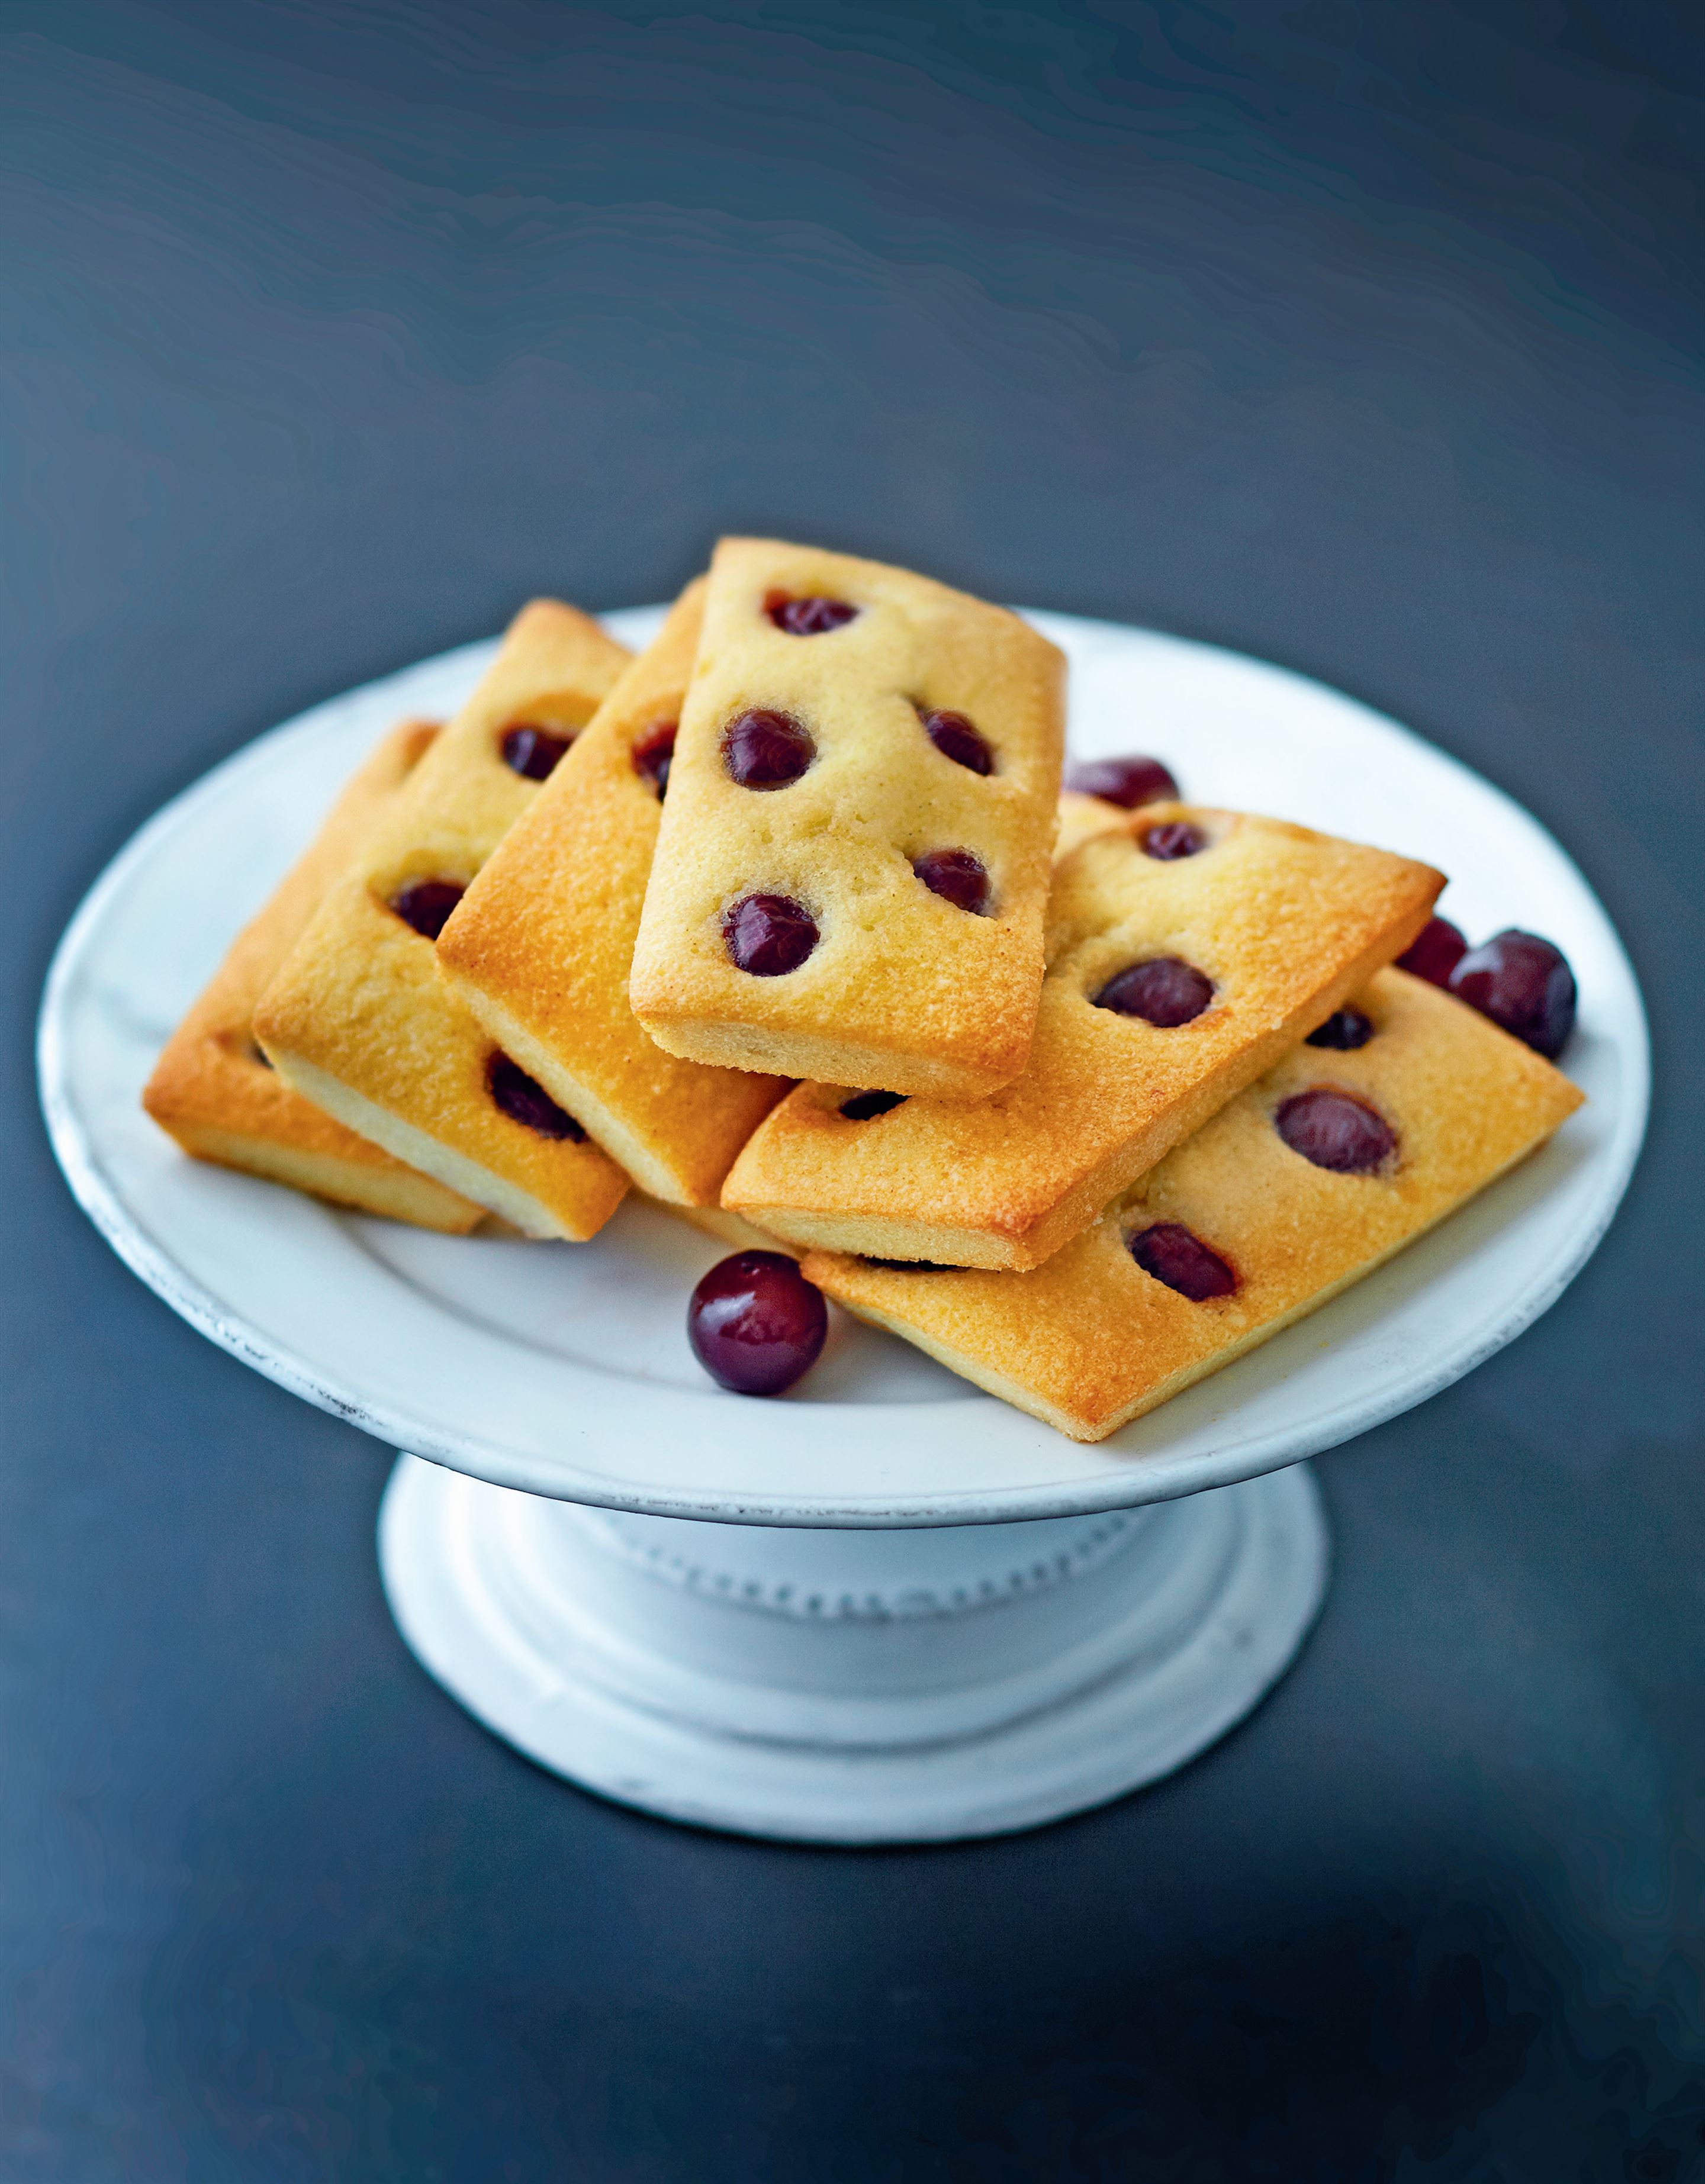 Morello cherry financiers